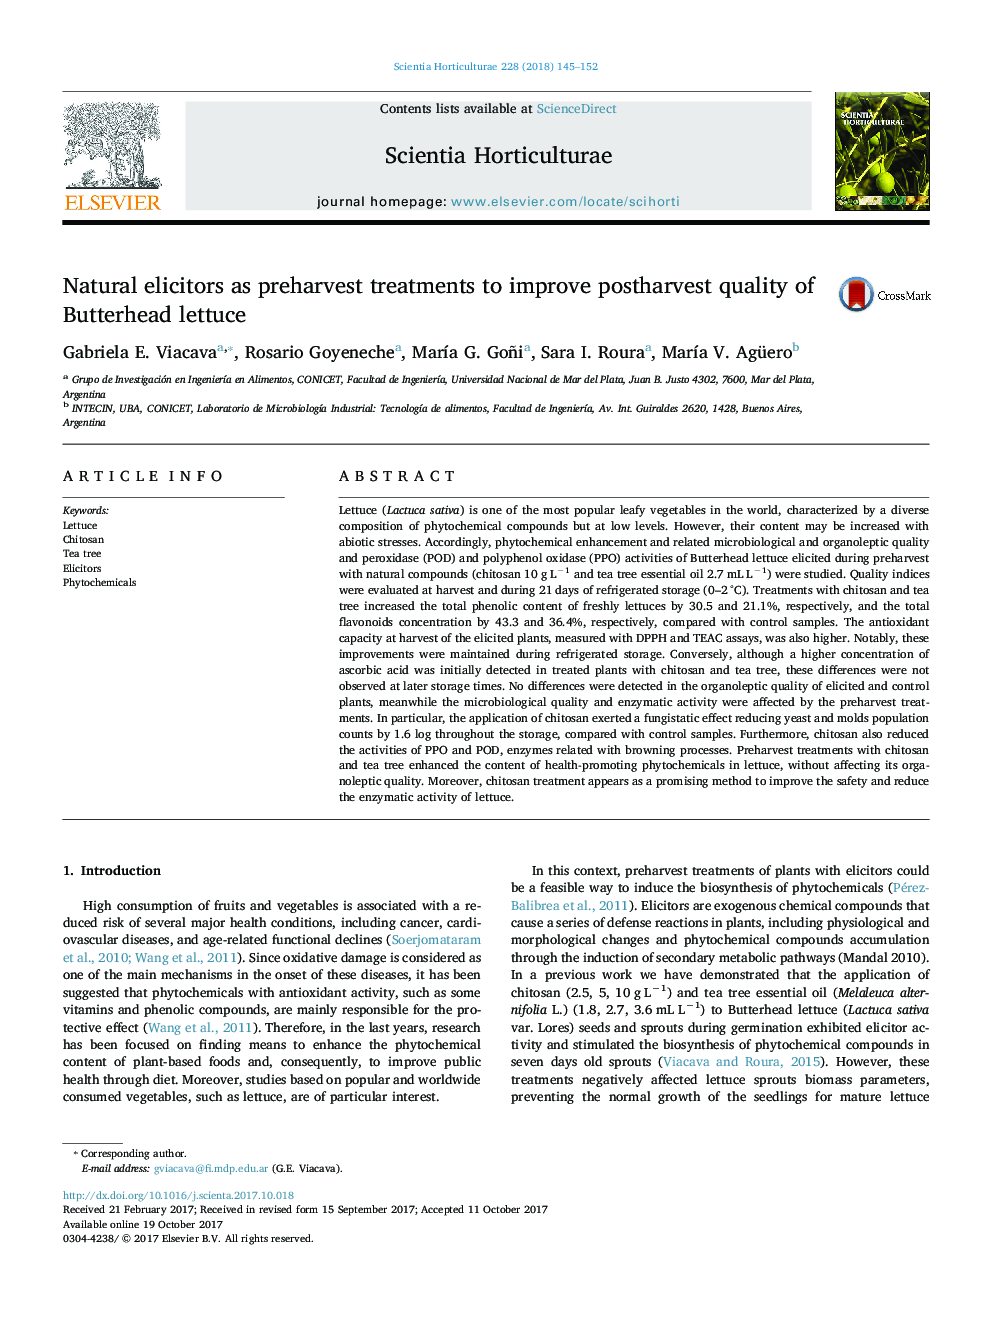 Natural elicitors as preharvest treatments to improve postharvest quality of Butterhead lettuce